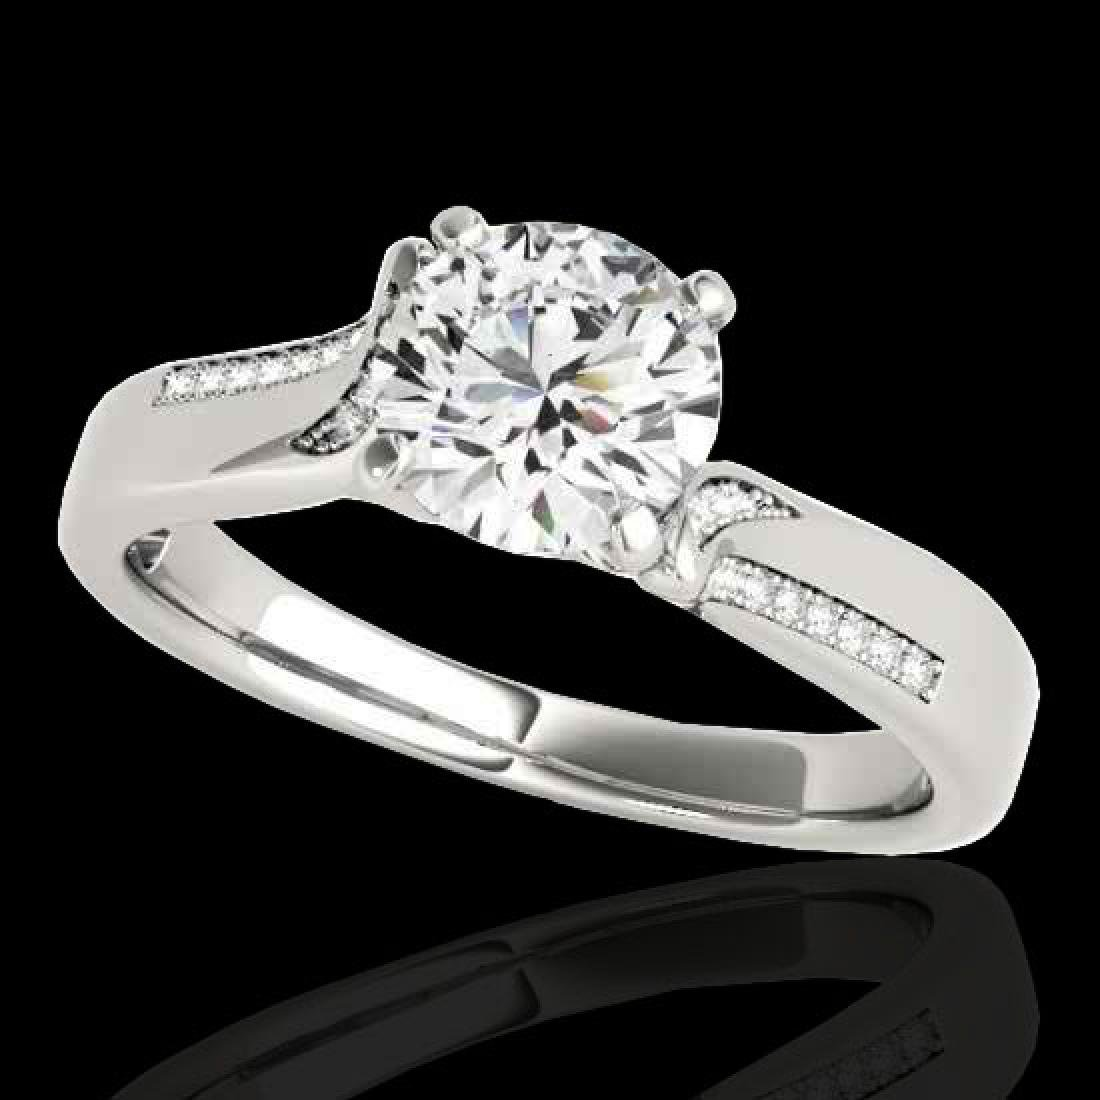 1.18 CTW H-SI/I Certified Diamond Solitaire Ring 10K